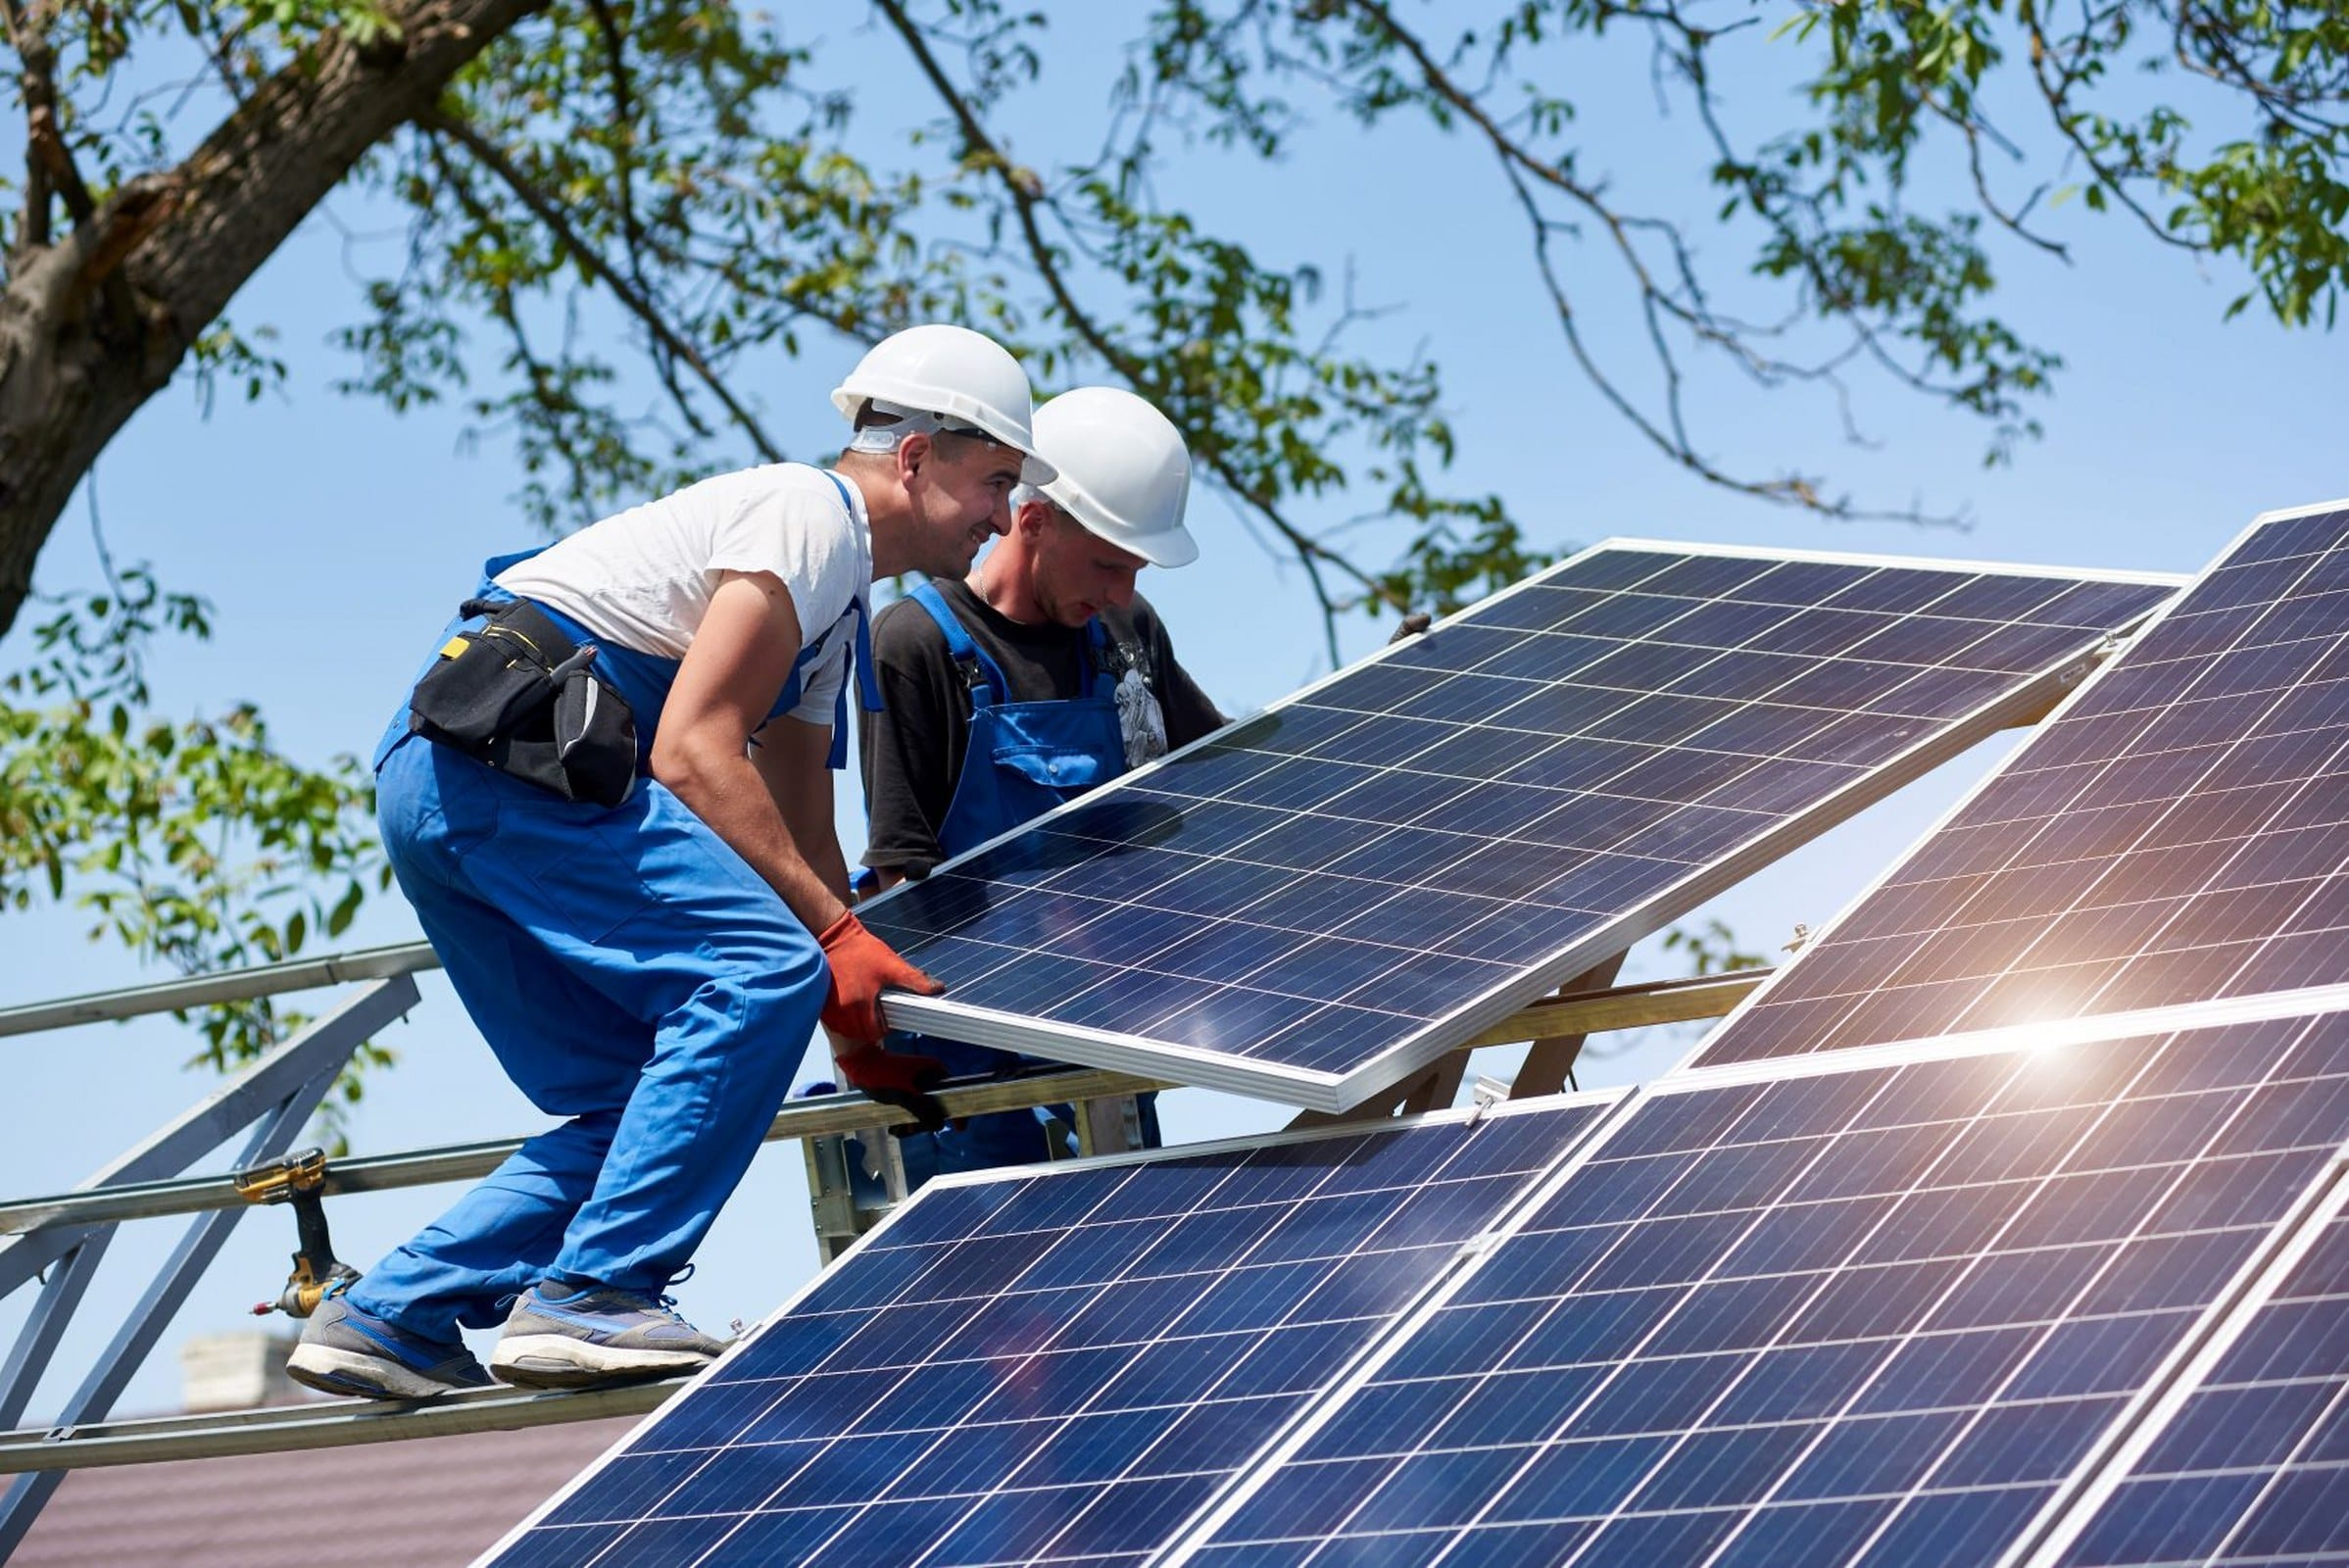 How to Install Solar Panels: A Basic Guide